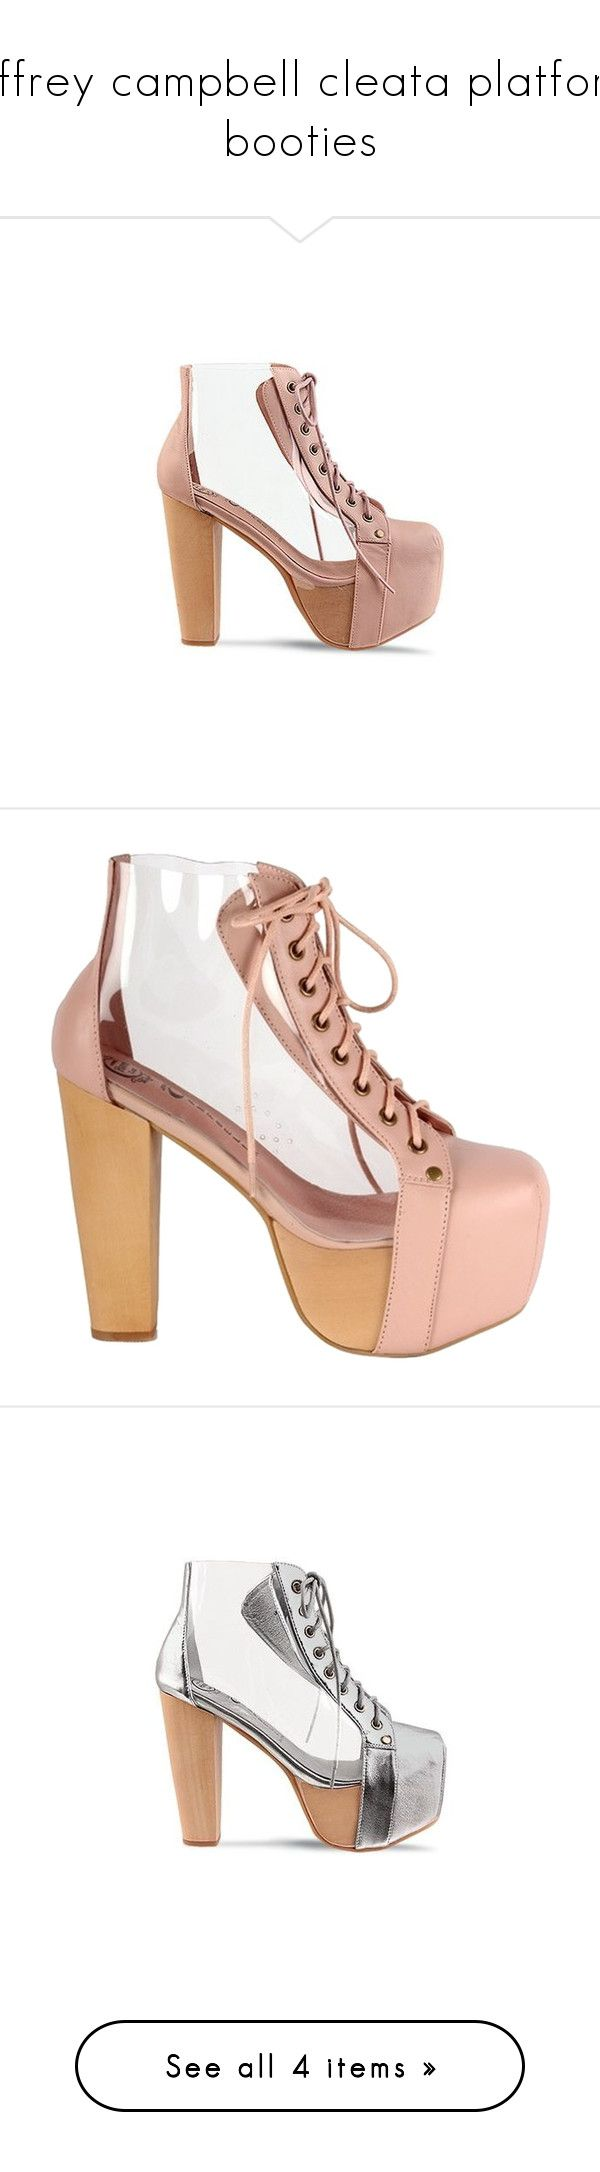 """""""jeffrey campbell cleata platform booties"""" by babyprincessdarling ❤ liked on Polyvore featuring shoes, boots, ankle booties, jeffrey campbell, nude clear, platform ankle booties, leather platform boots, faux leather booties, high heel booties and leather booties"""